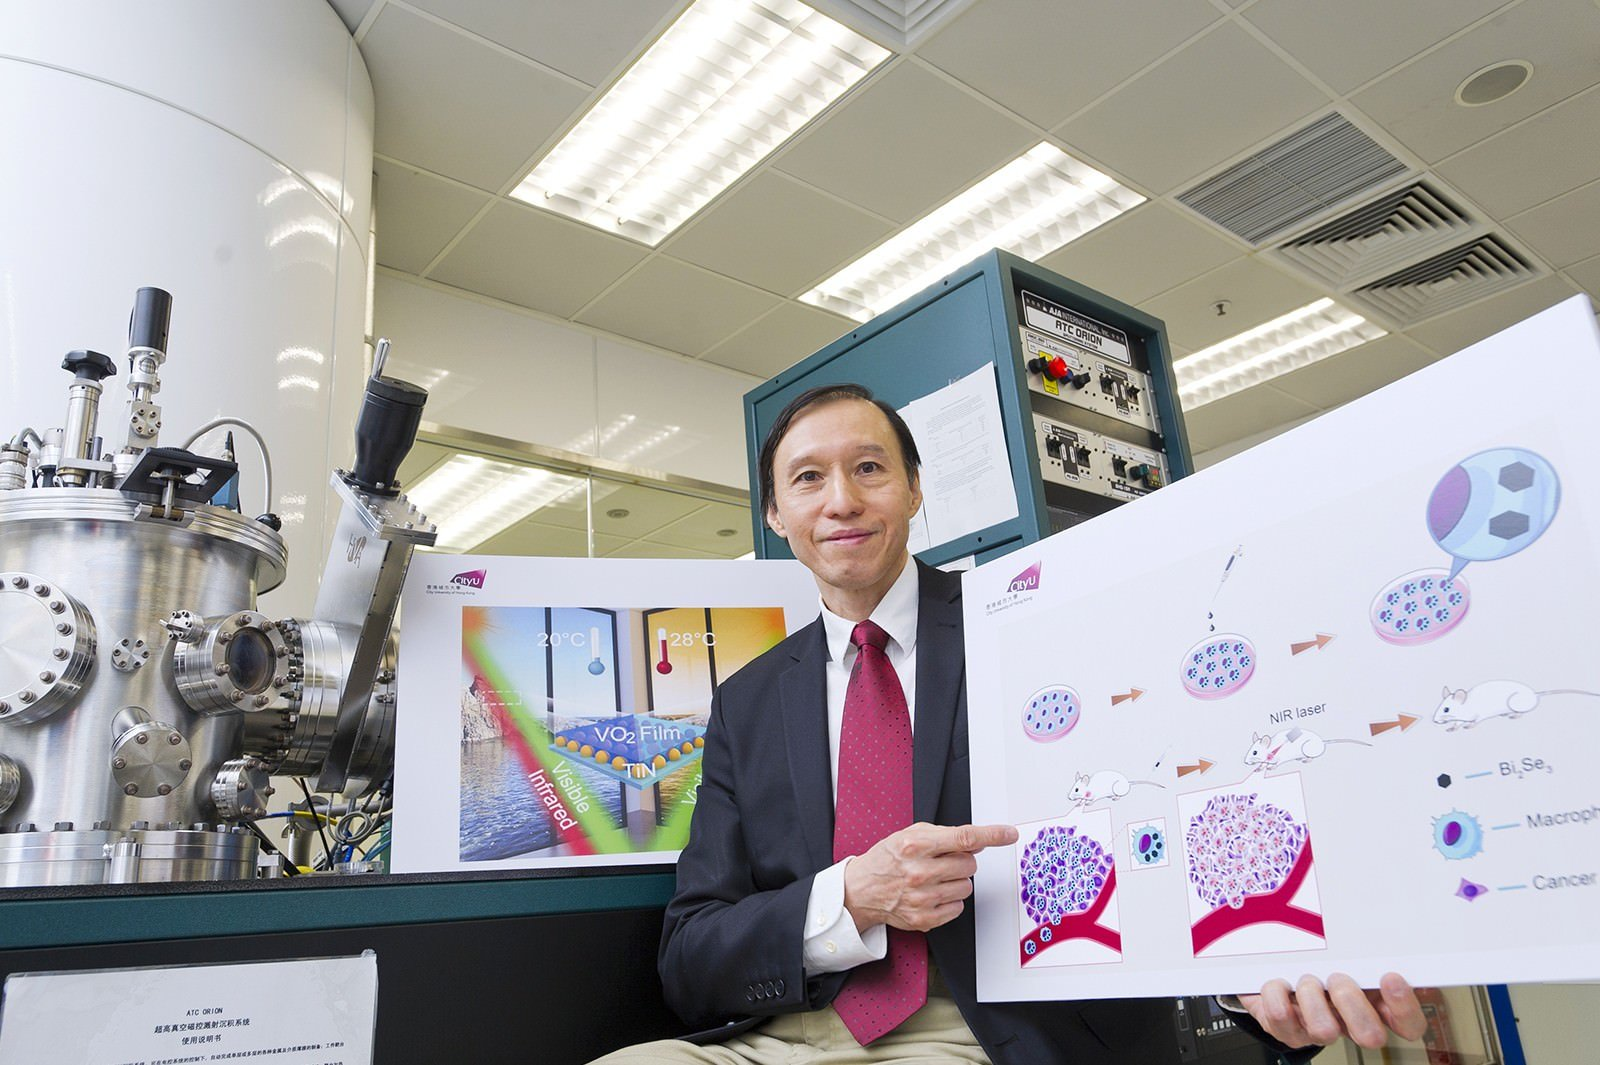 Breakthrough Technologies Developed by Prof Paul Chu